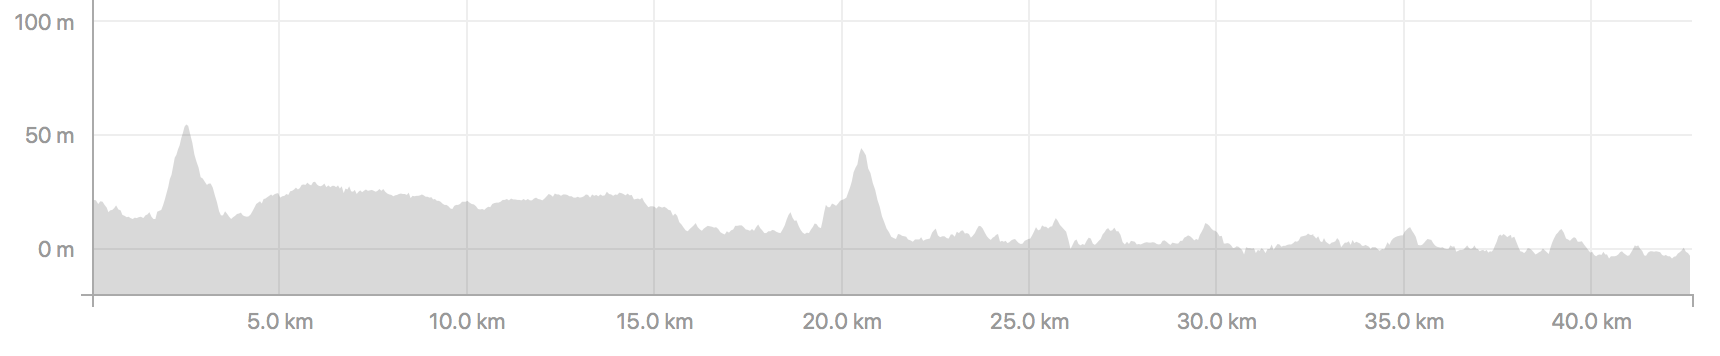 Midnight Sun Marathon Course Profile